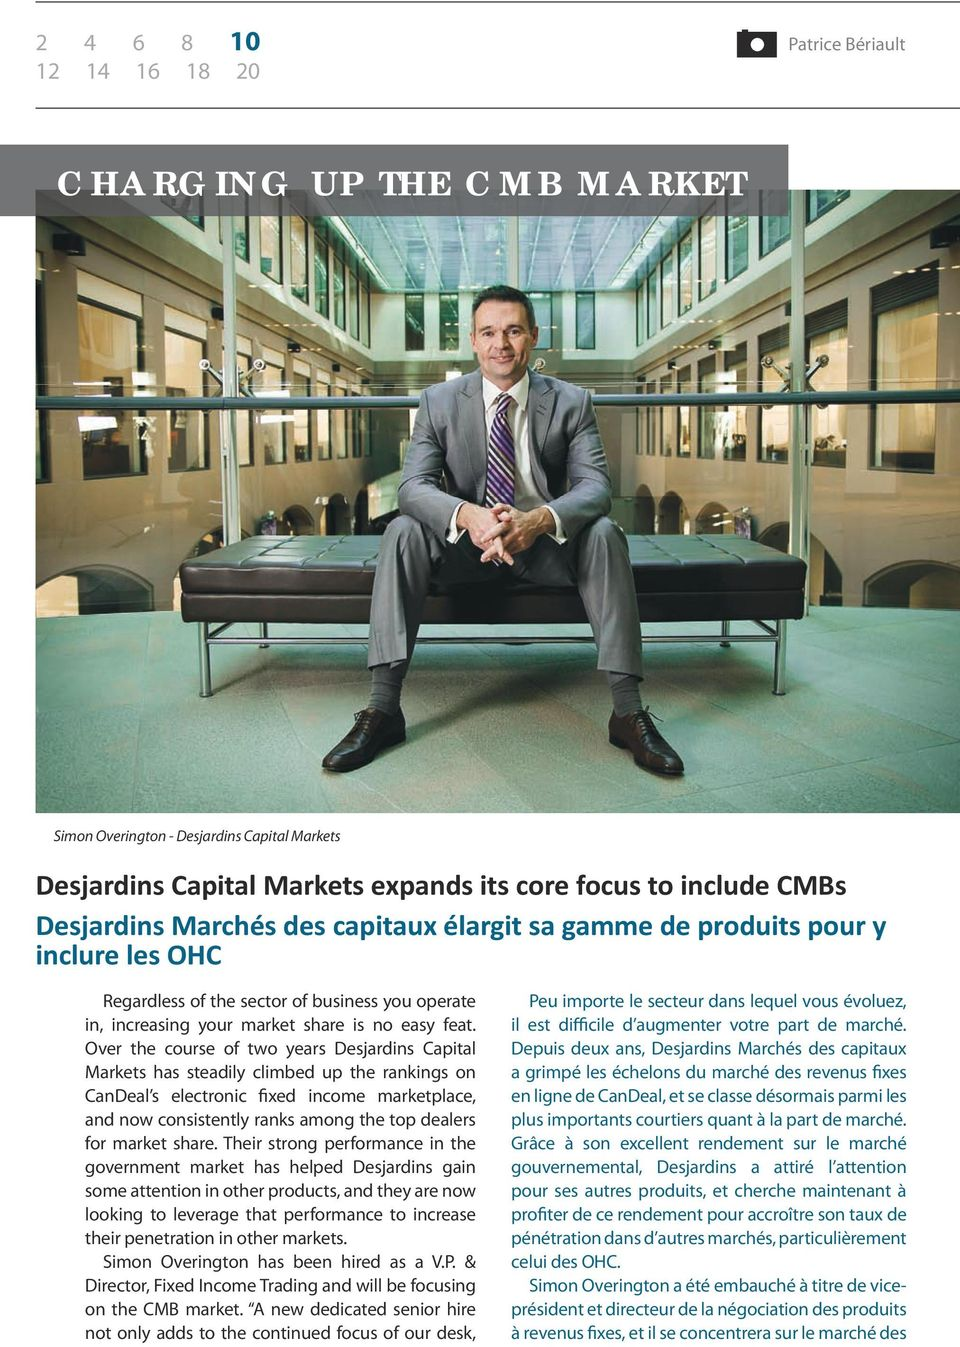 Over the course of two years Desjardins Capital Markets has steadily climbed up the rankings on CanDeal s electronic fixed income marketplace, and now consistently ranks among the top dealers for